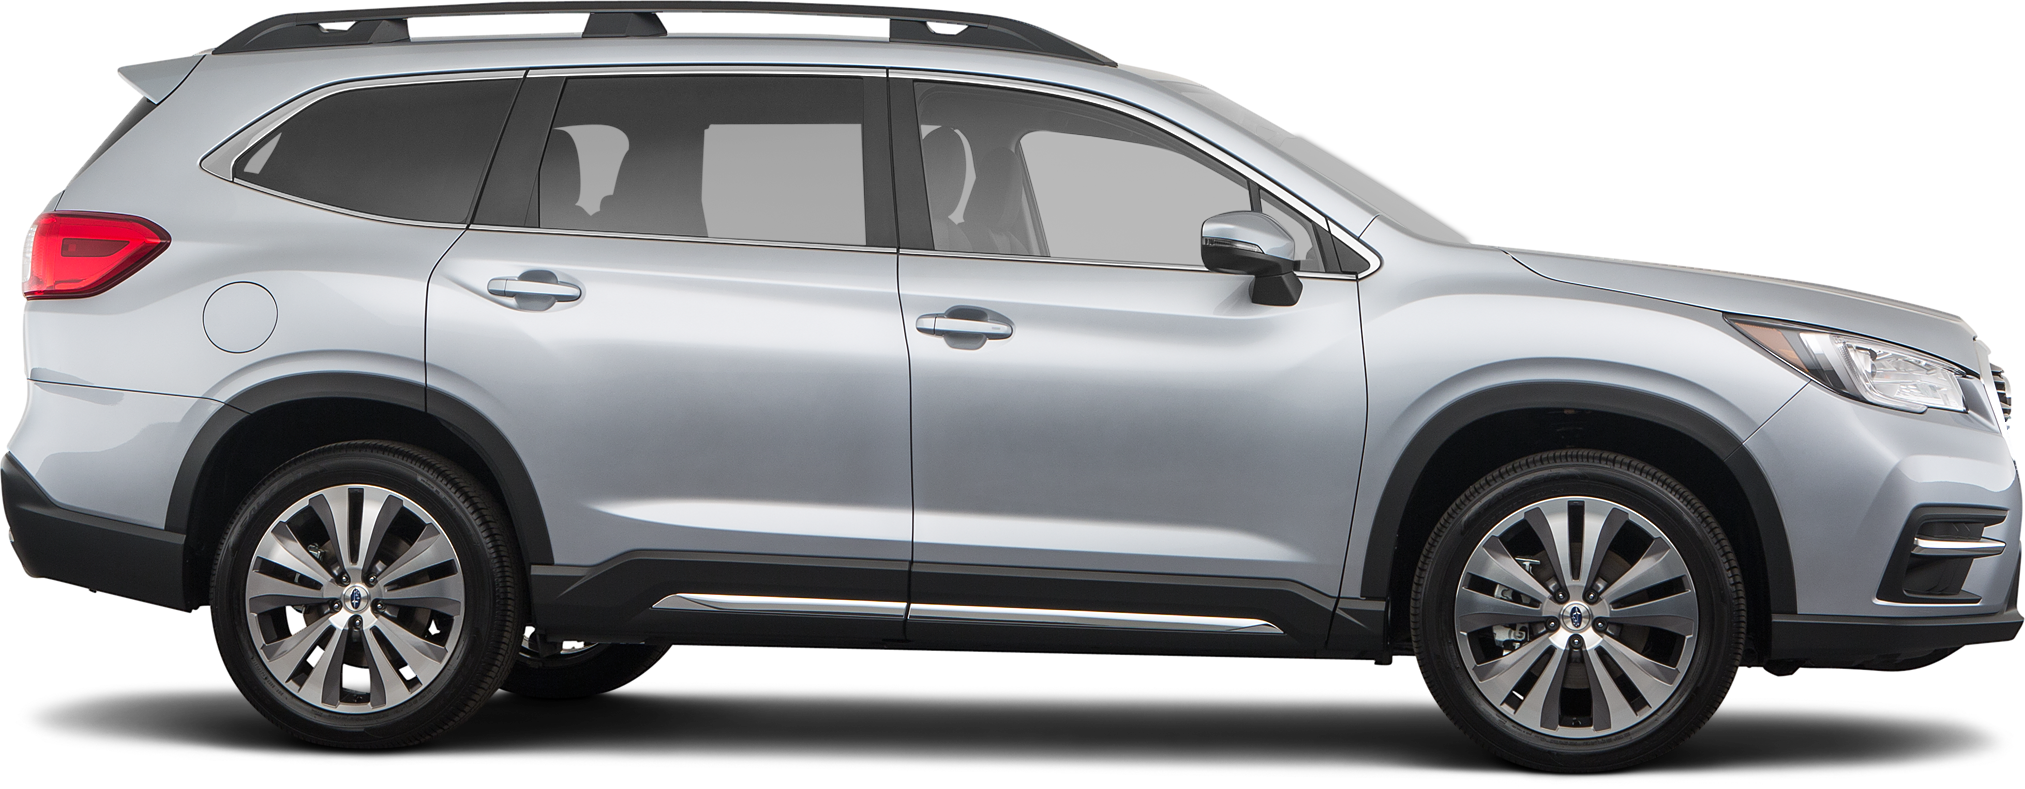 http://images.dealer.com/ddc/vehicles/2020/Subaru/Ascent/SUV/trim_Limited_ee9767/perspective/side-right/2020_76.png